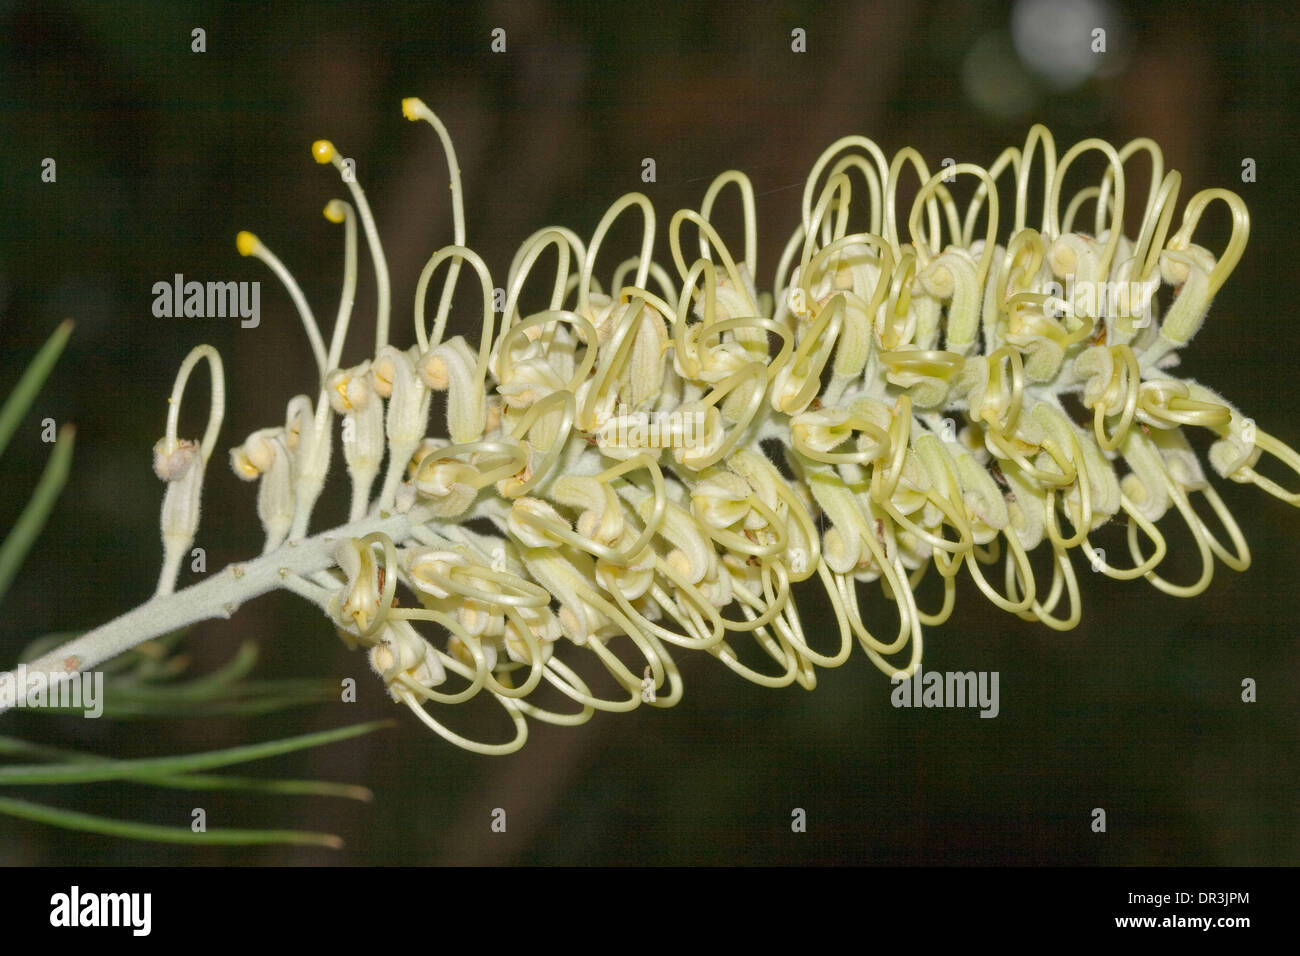 Close up of beautiful creamy white flower of Grevillea cultivar 'Moonlight' against dark background - Stock Image